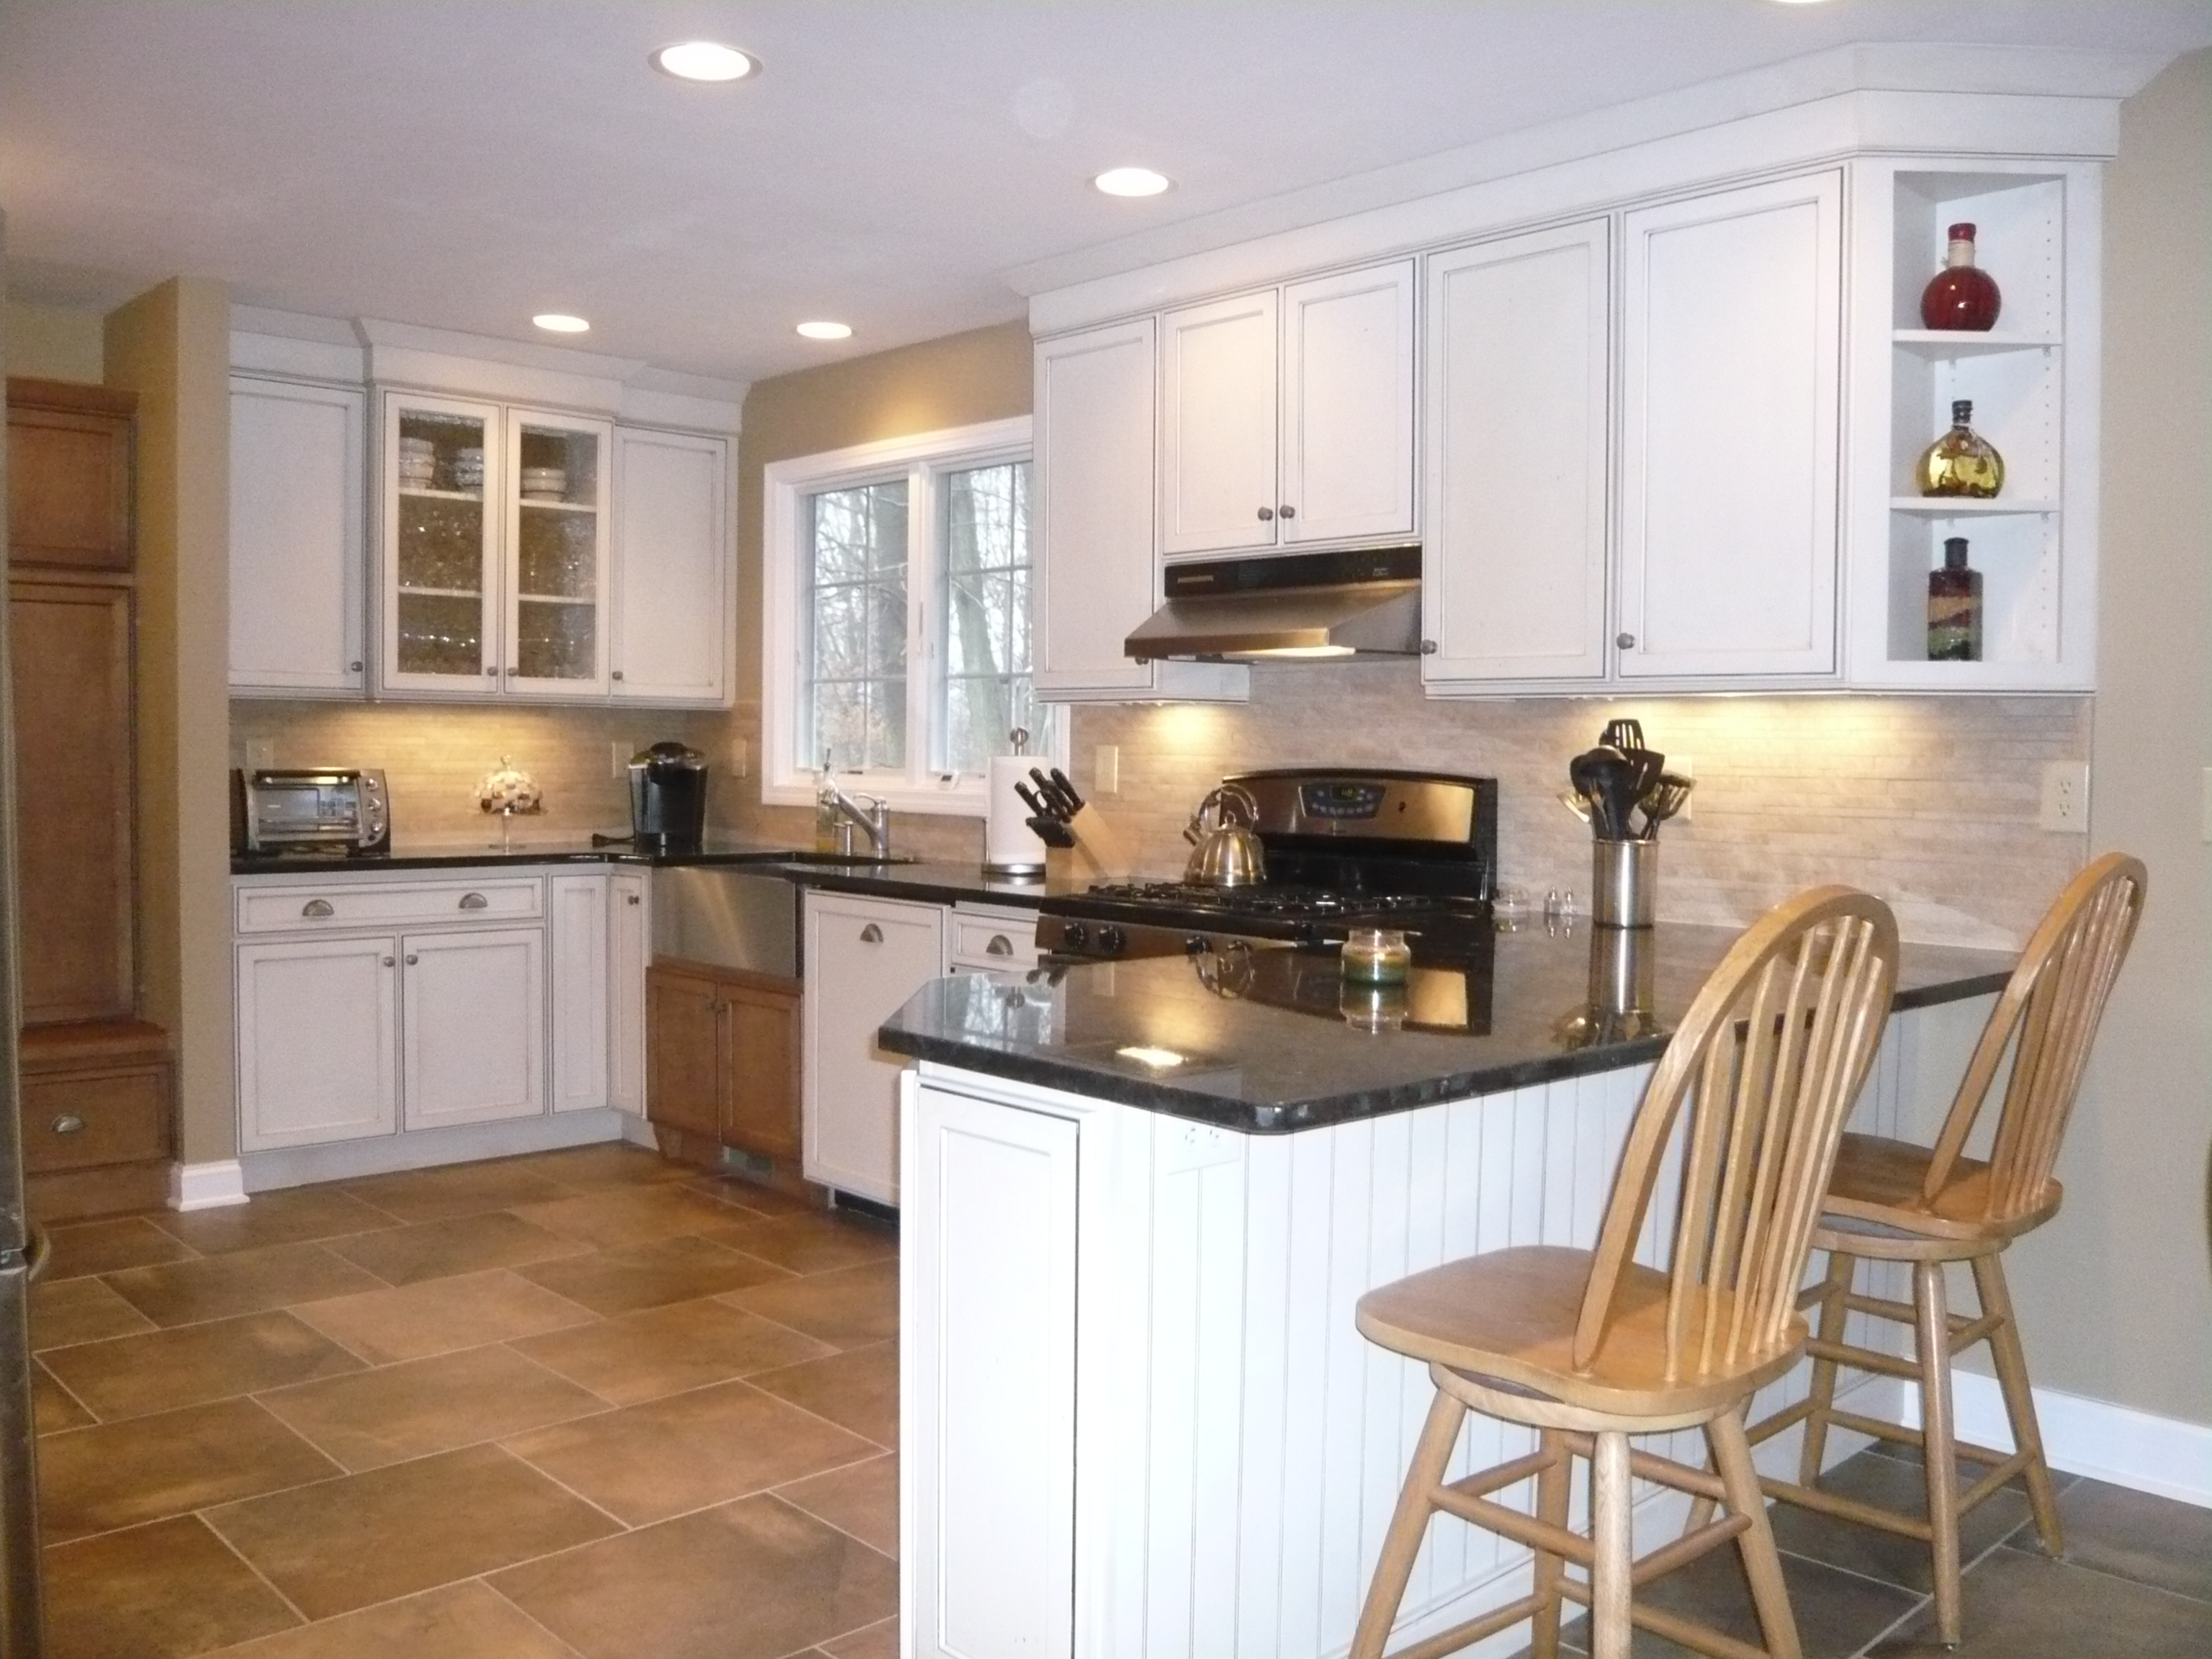 Wood and Paint Mix in Milford, CT | Kitchen Design Center